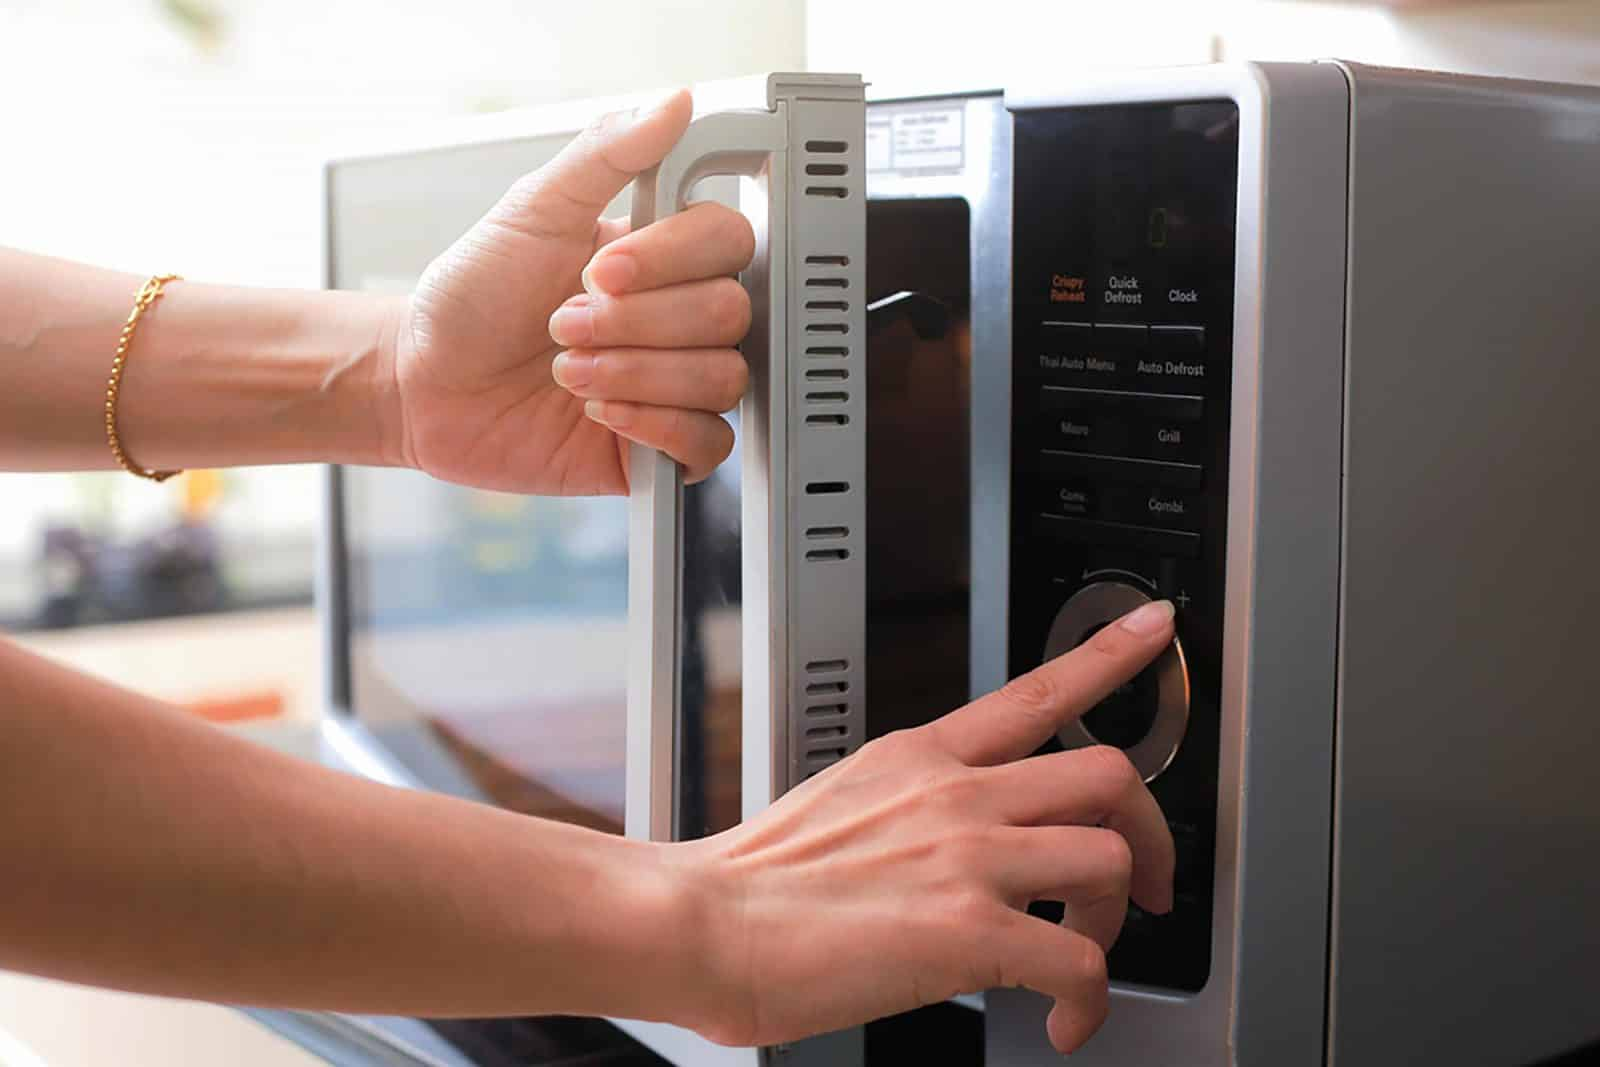 7 Common Foods That Become Toxic When Reheated